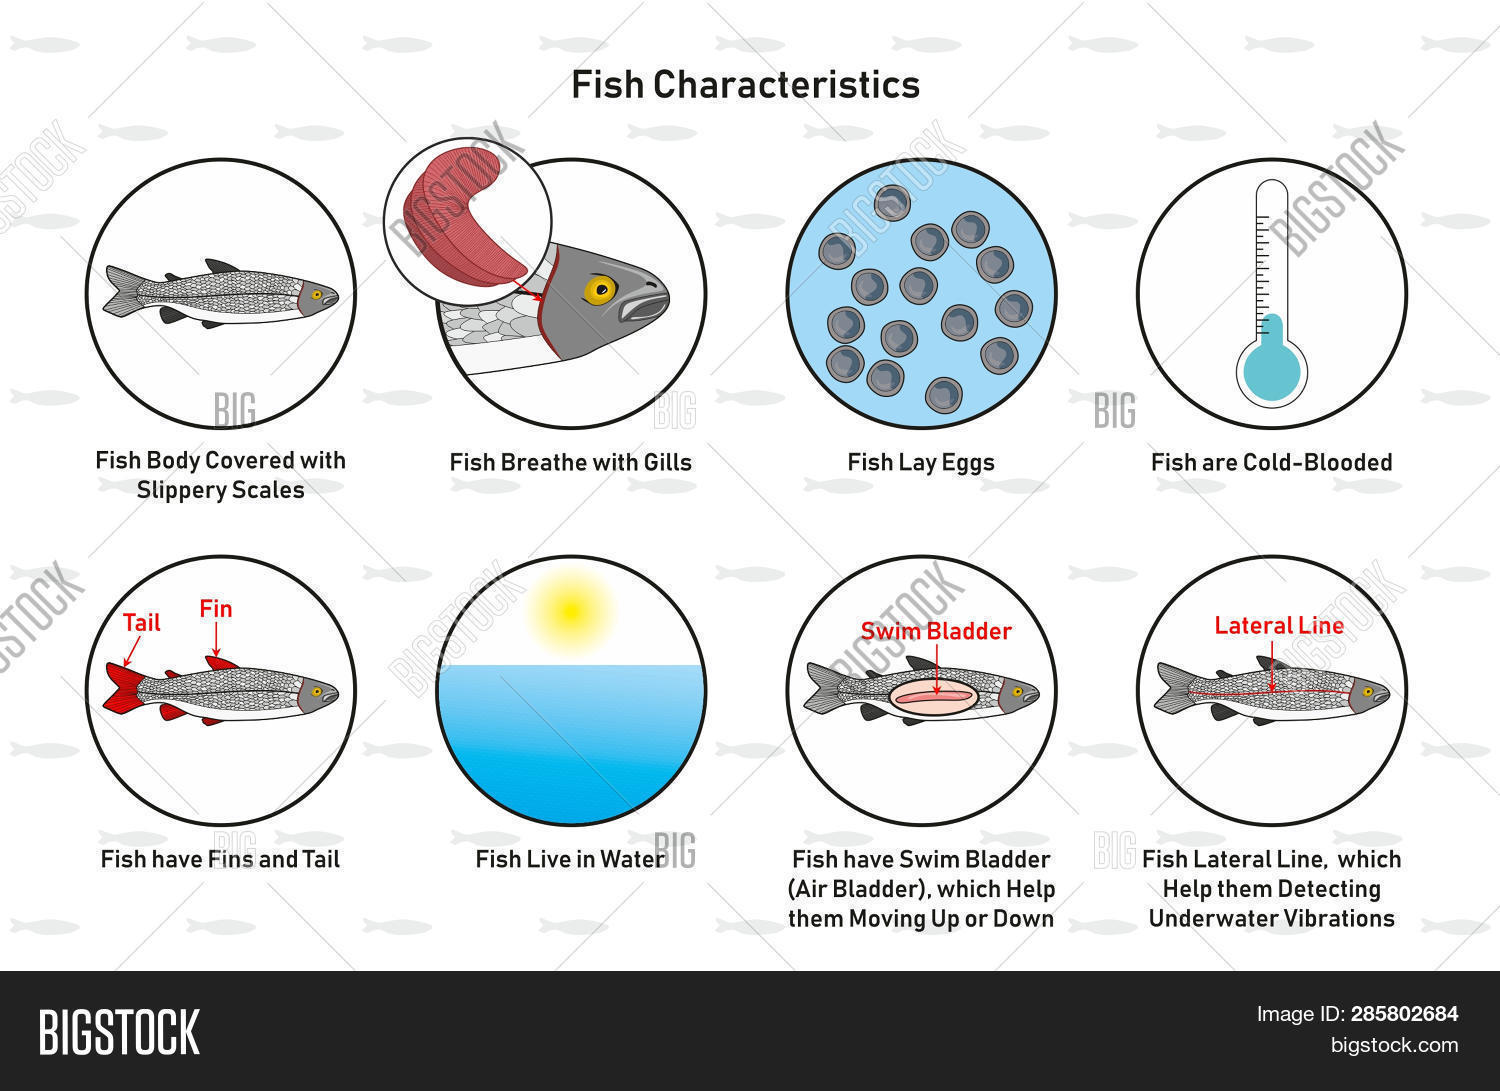 hight resolution of fish characteristics infographic diagram including slippery scales gills laying eggs cold blooded fins tail living in